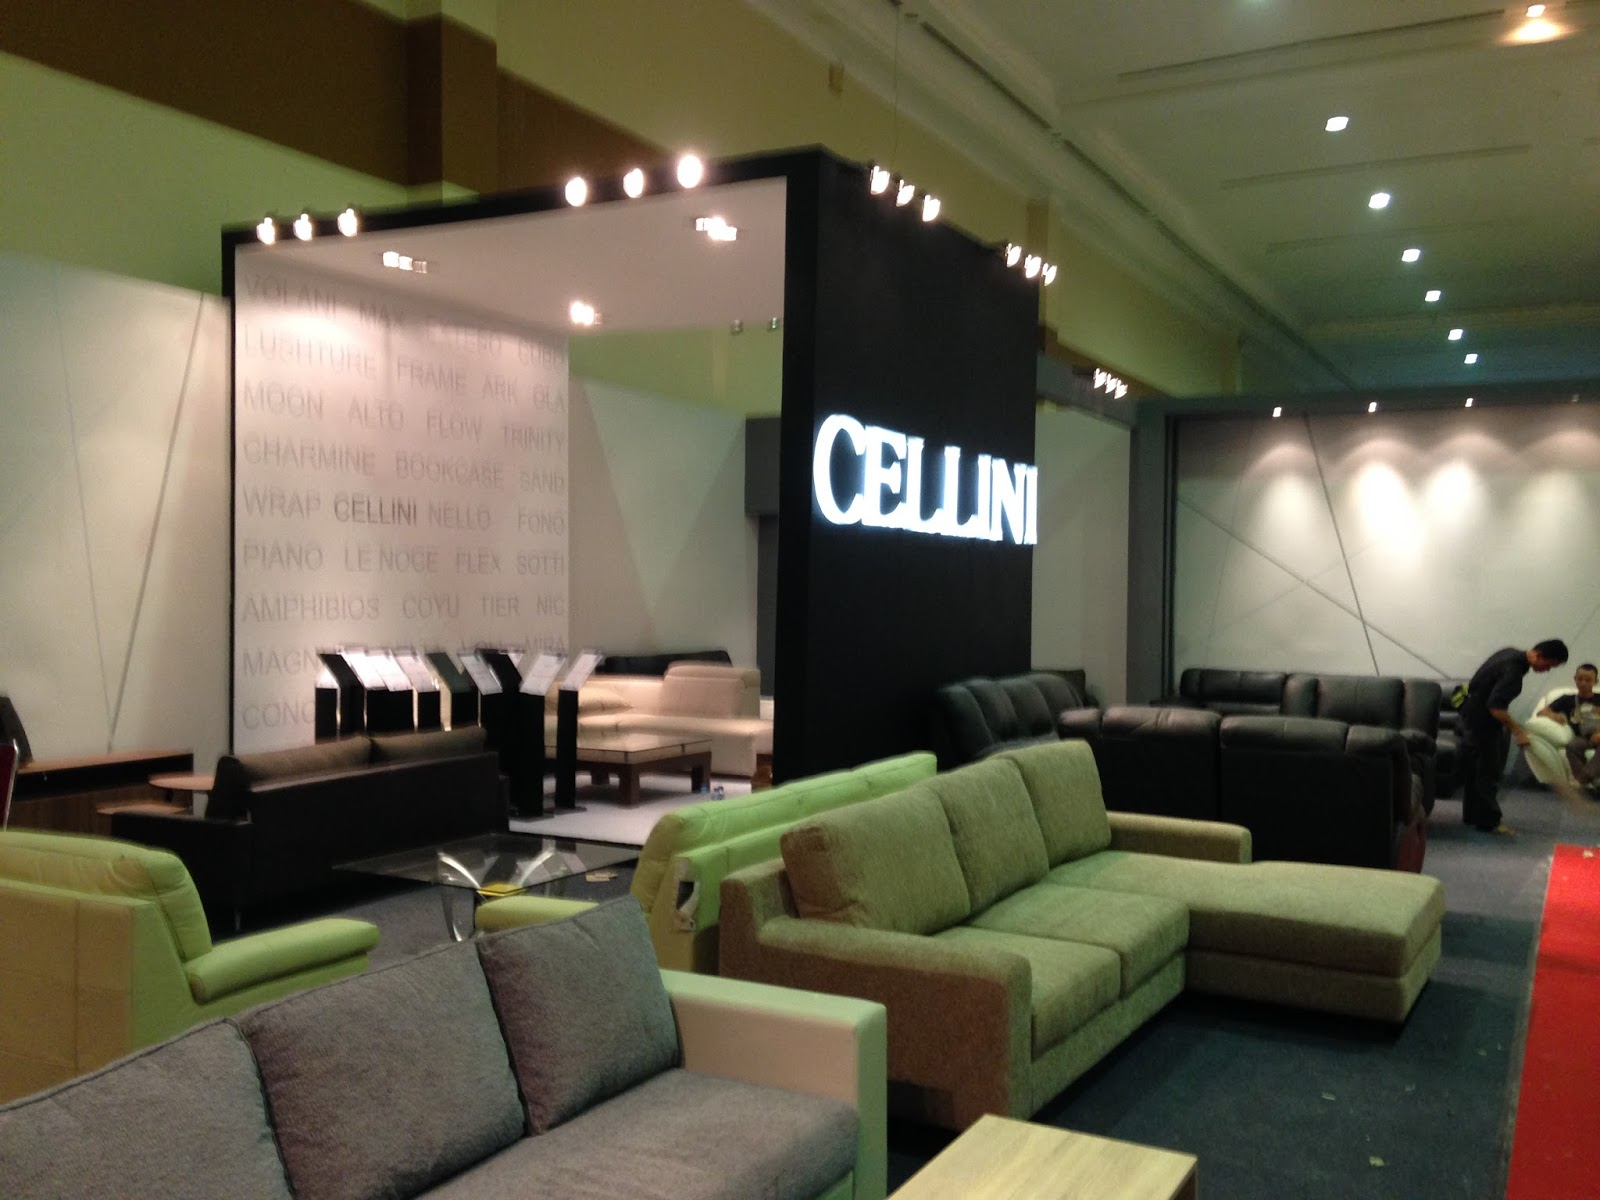 Booth cellini furniture expo